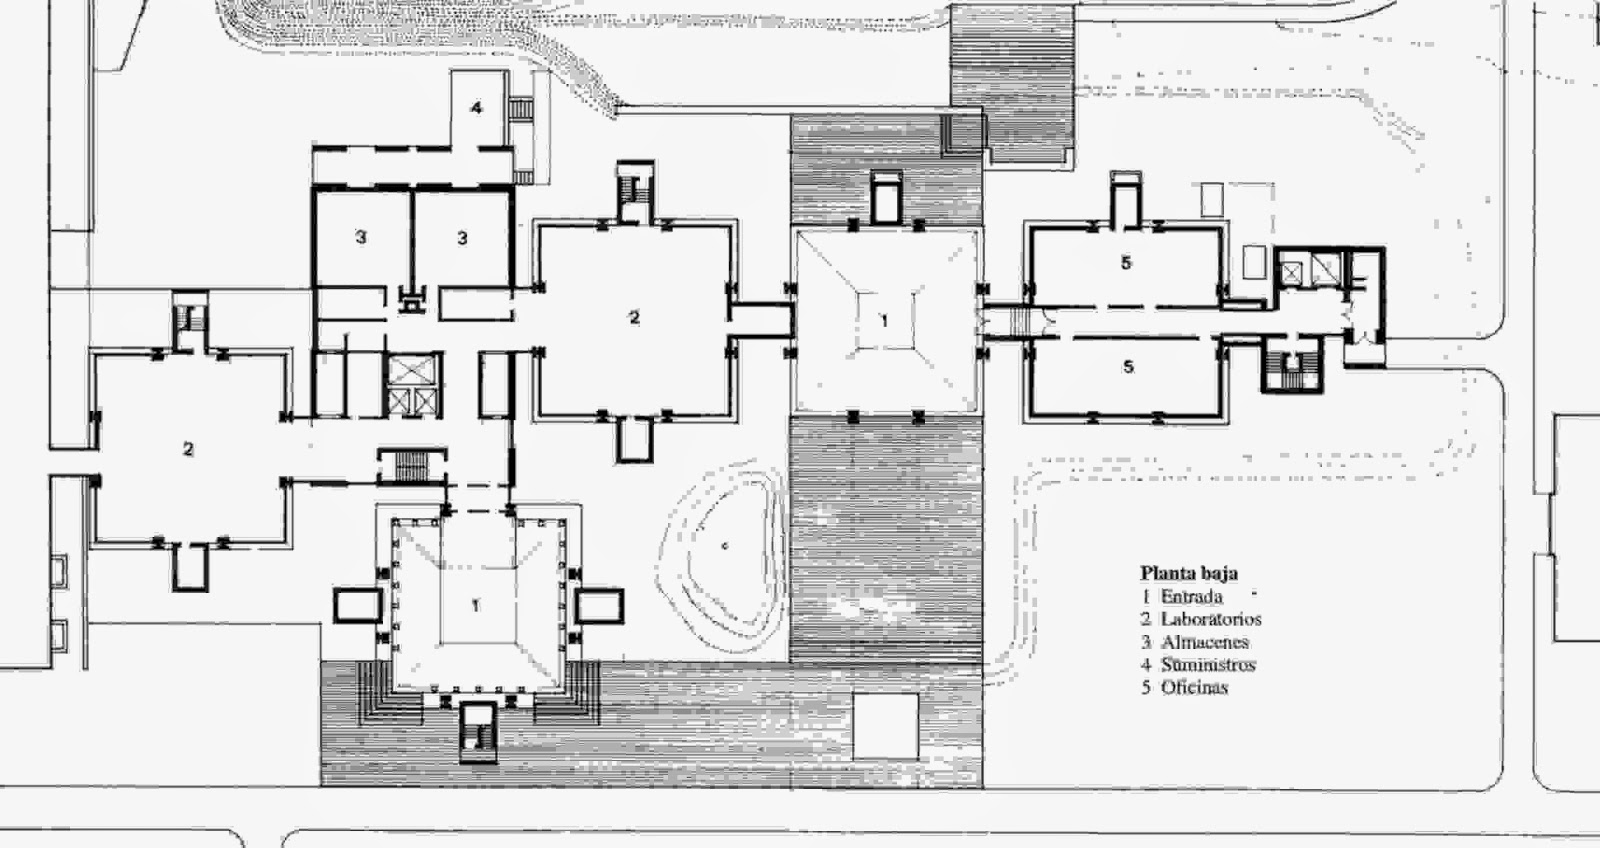 Laboratorios de Biotecnología Richards en Philadelphia | Louis Kahn | Richards Medical Research Building